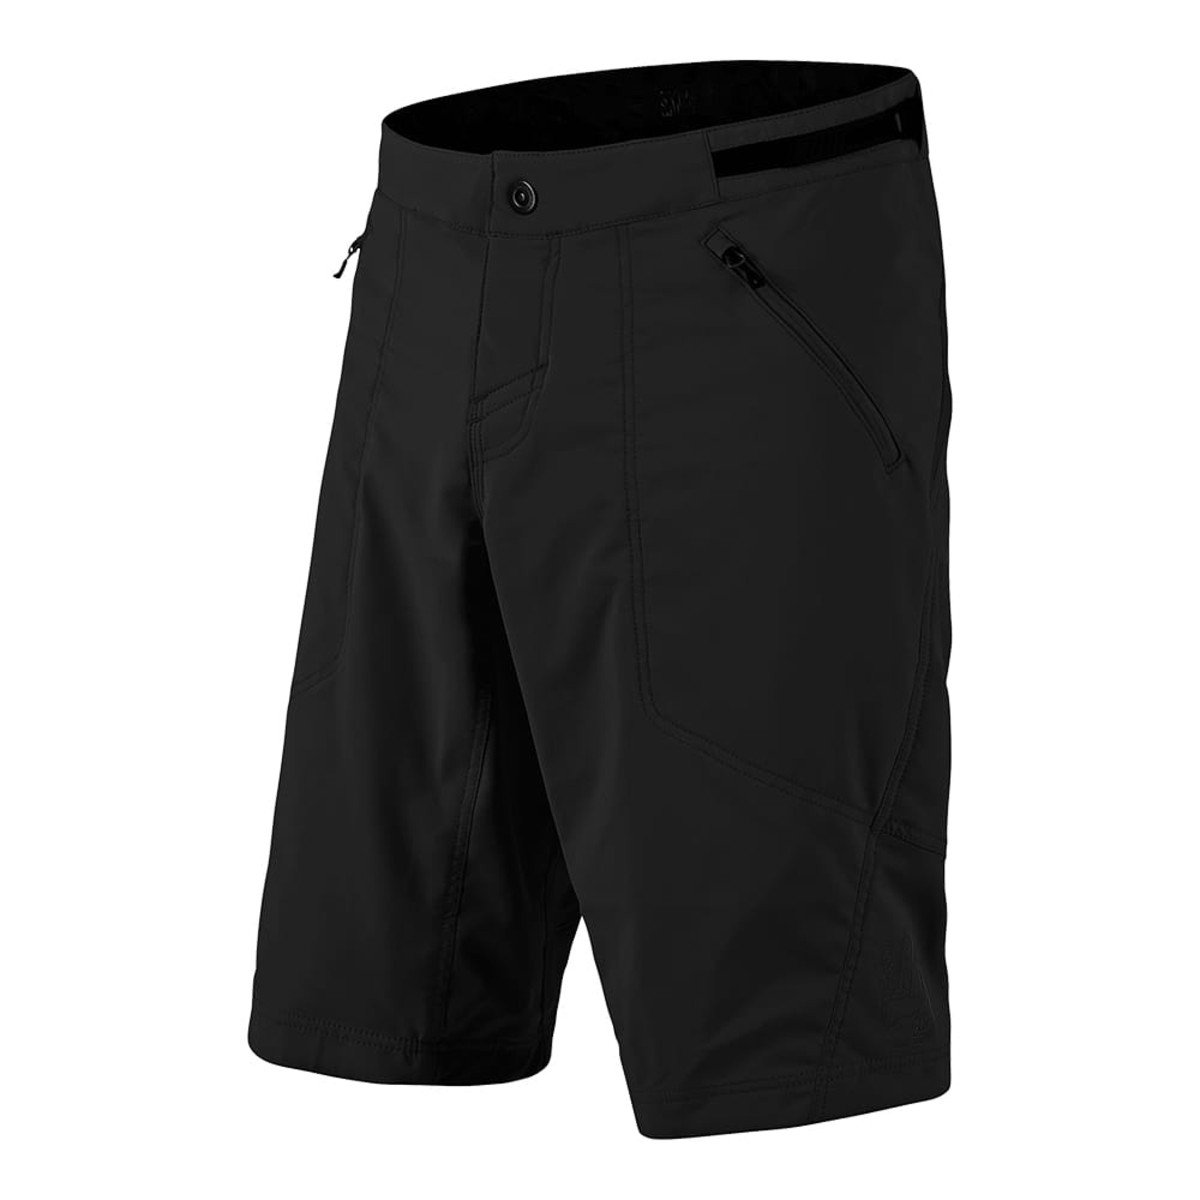 Troy Lee Designs 2018 Skyline Shell Men's Off-Road BMX Shorts - Black / 30 by Troy Lee Designs